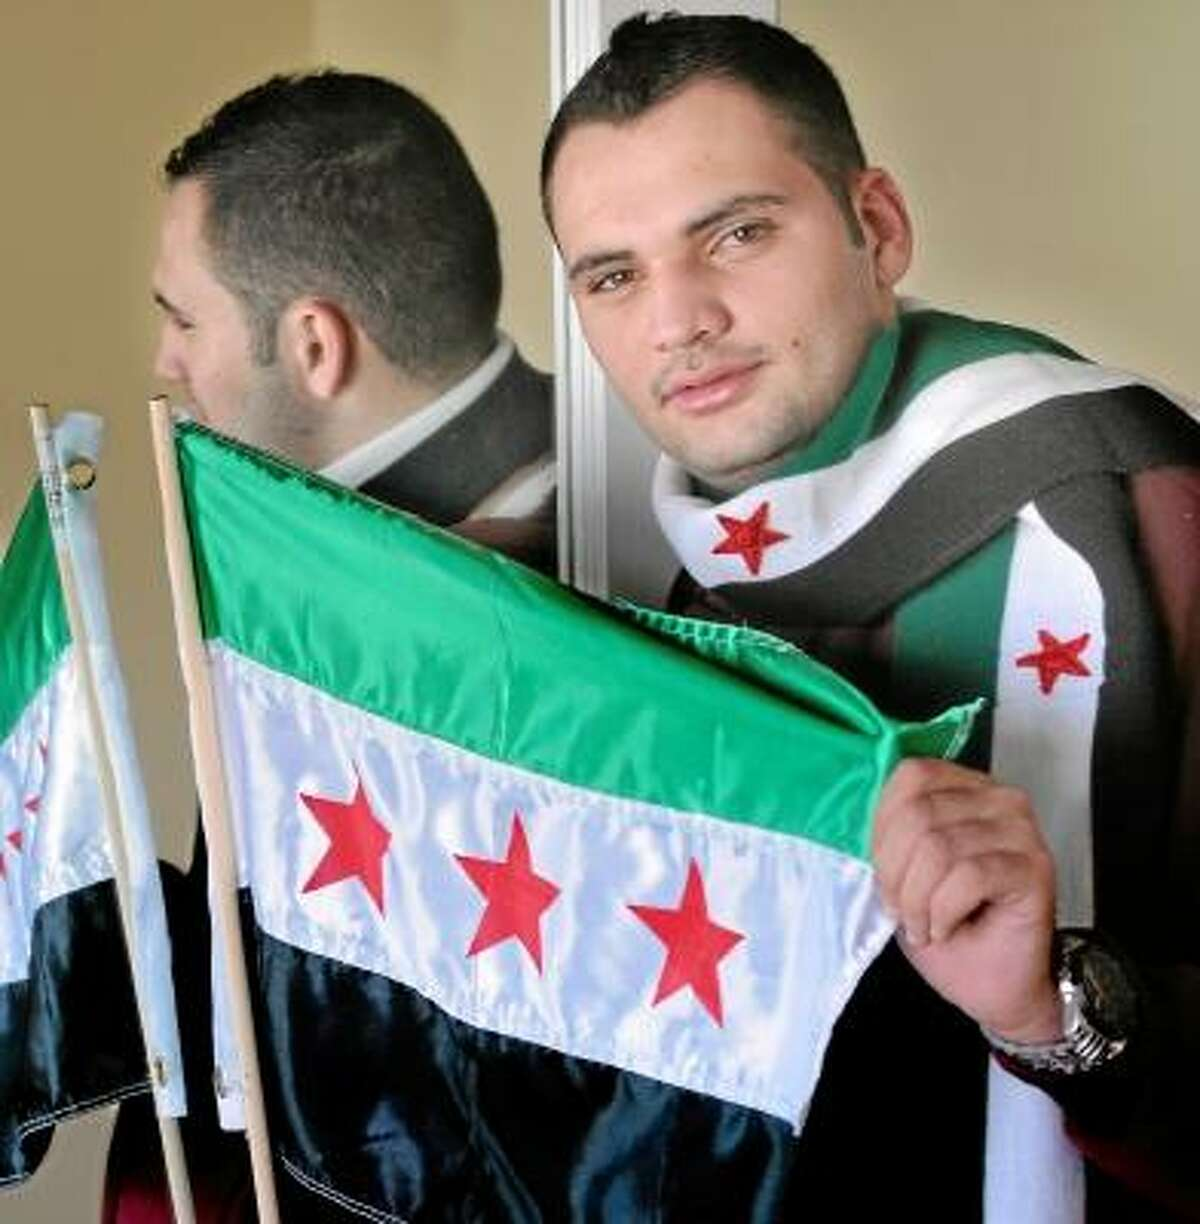 CCSU student and Syrian Abdul Kreiyeh at his Middletown home. Kreiyah and his family left Syria several months ago after harrowing experiences. Mara Lavitt/New Haven Register 11/24/12